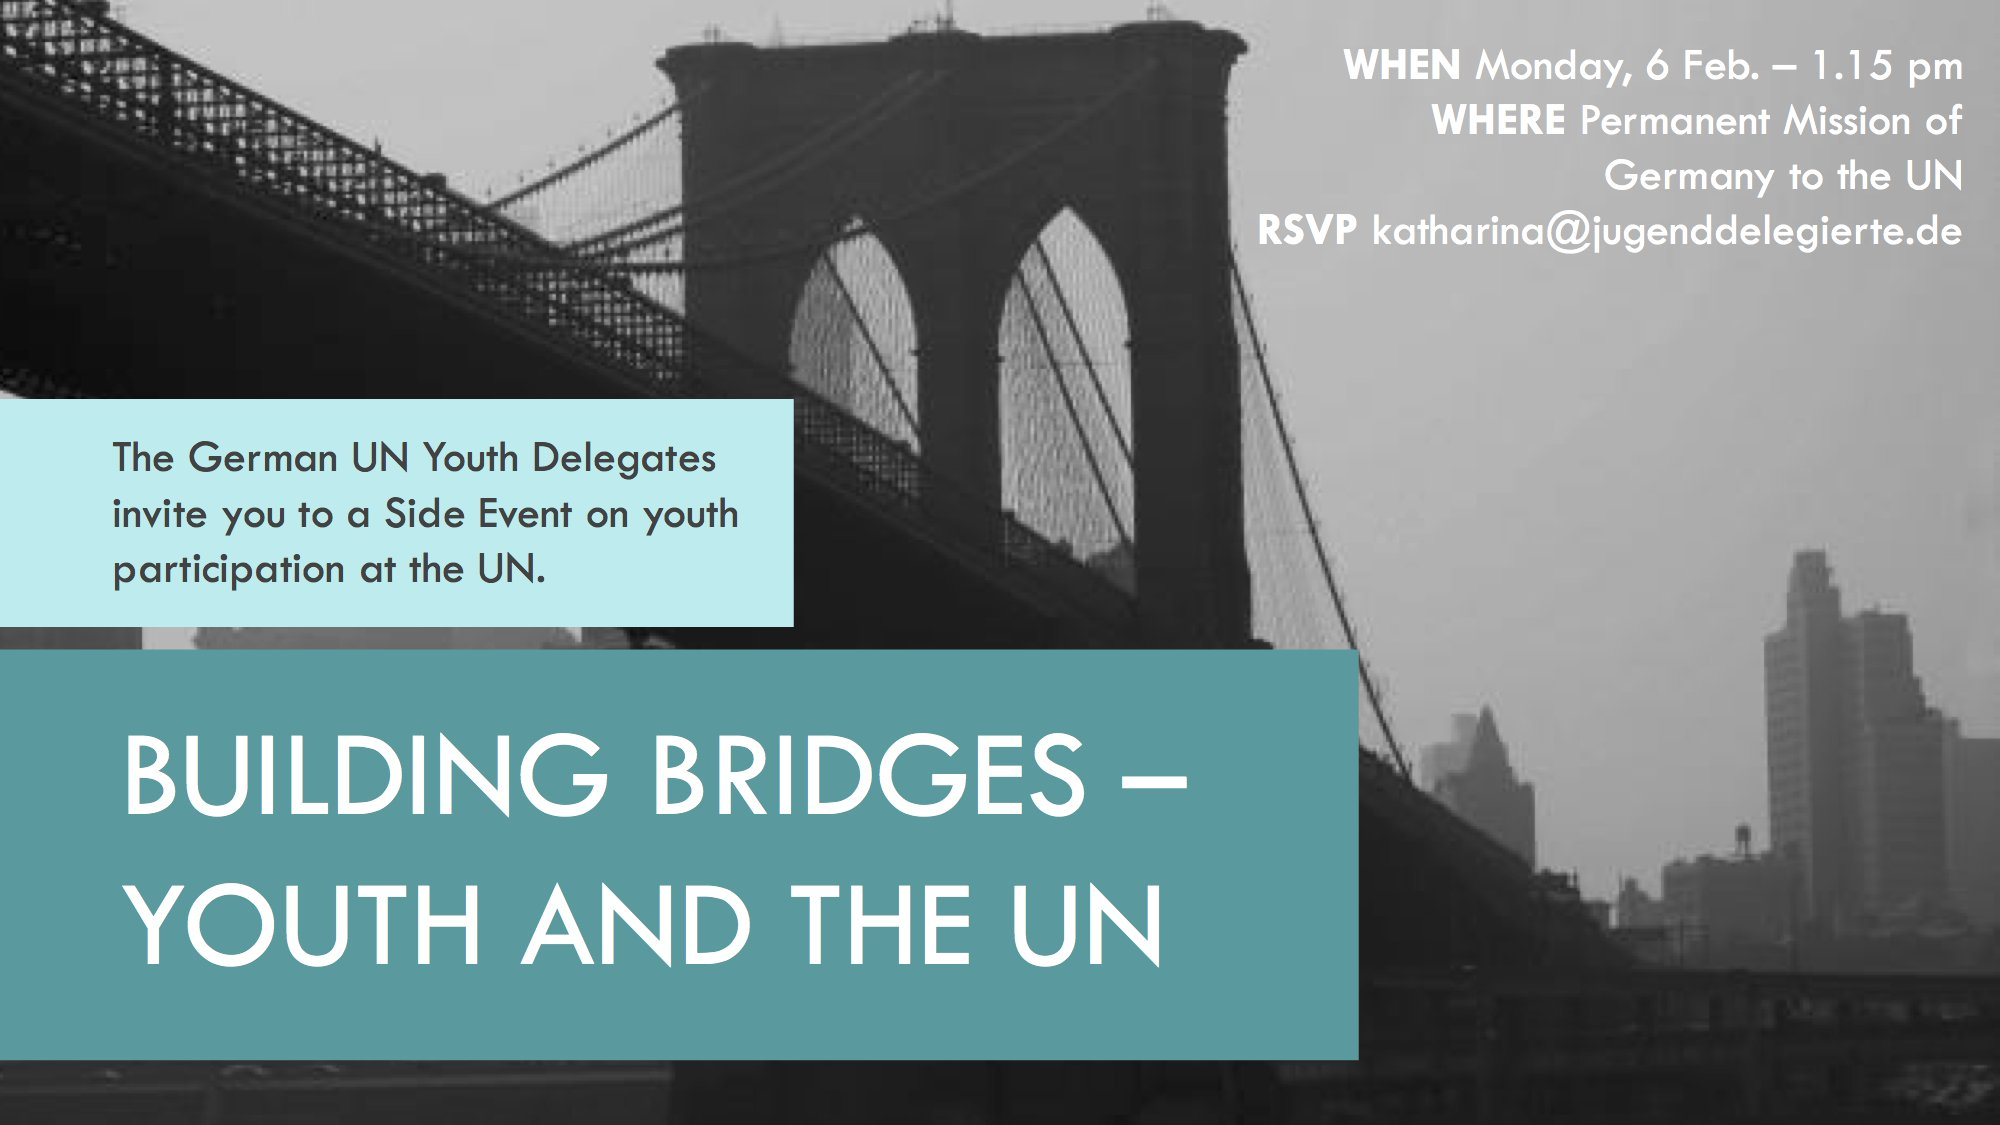 Join us! I'll be speaking today at @GermanyUN on Youth Participation at the UN. Thanks to @YouthDelegates for the invitation. #CSocD55 https://t.co/64R17RCv5v